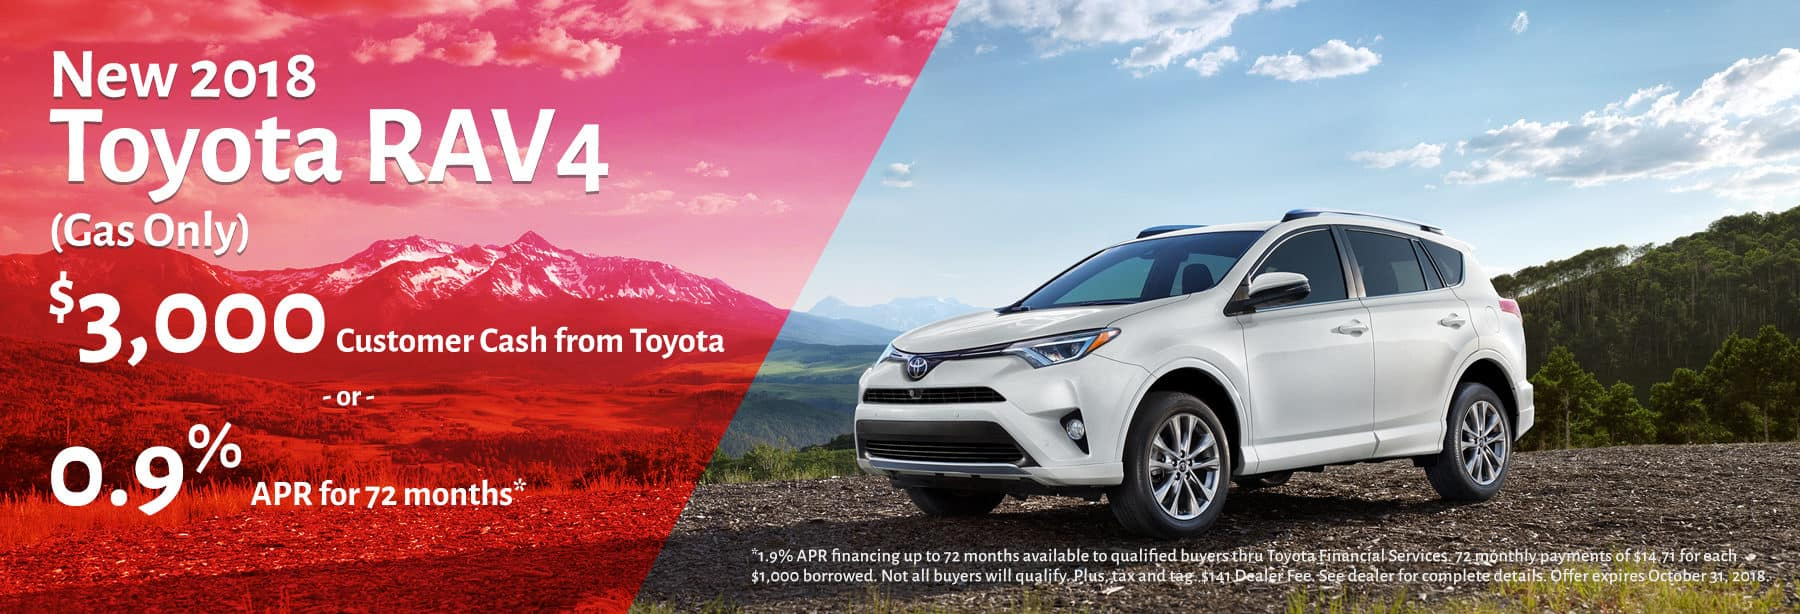 Toyota RAV4 October 2018 Promotion